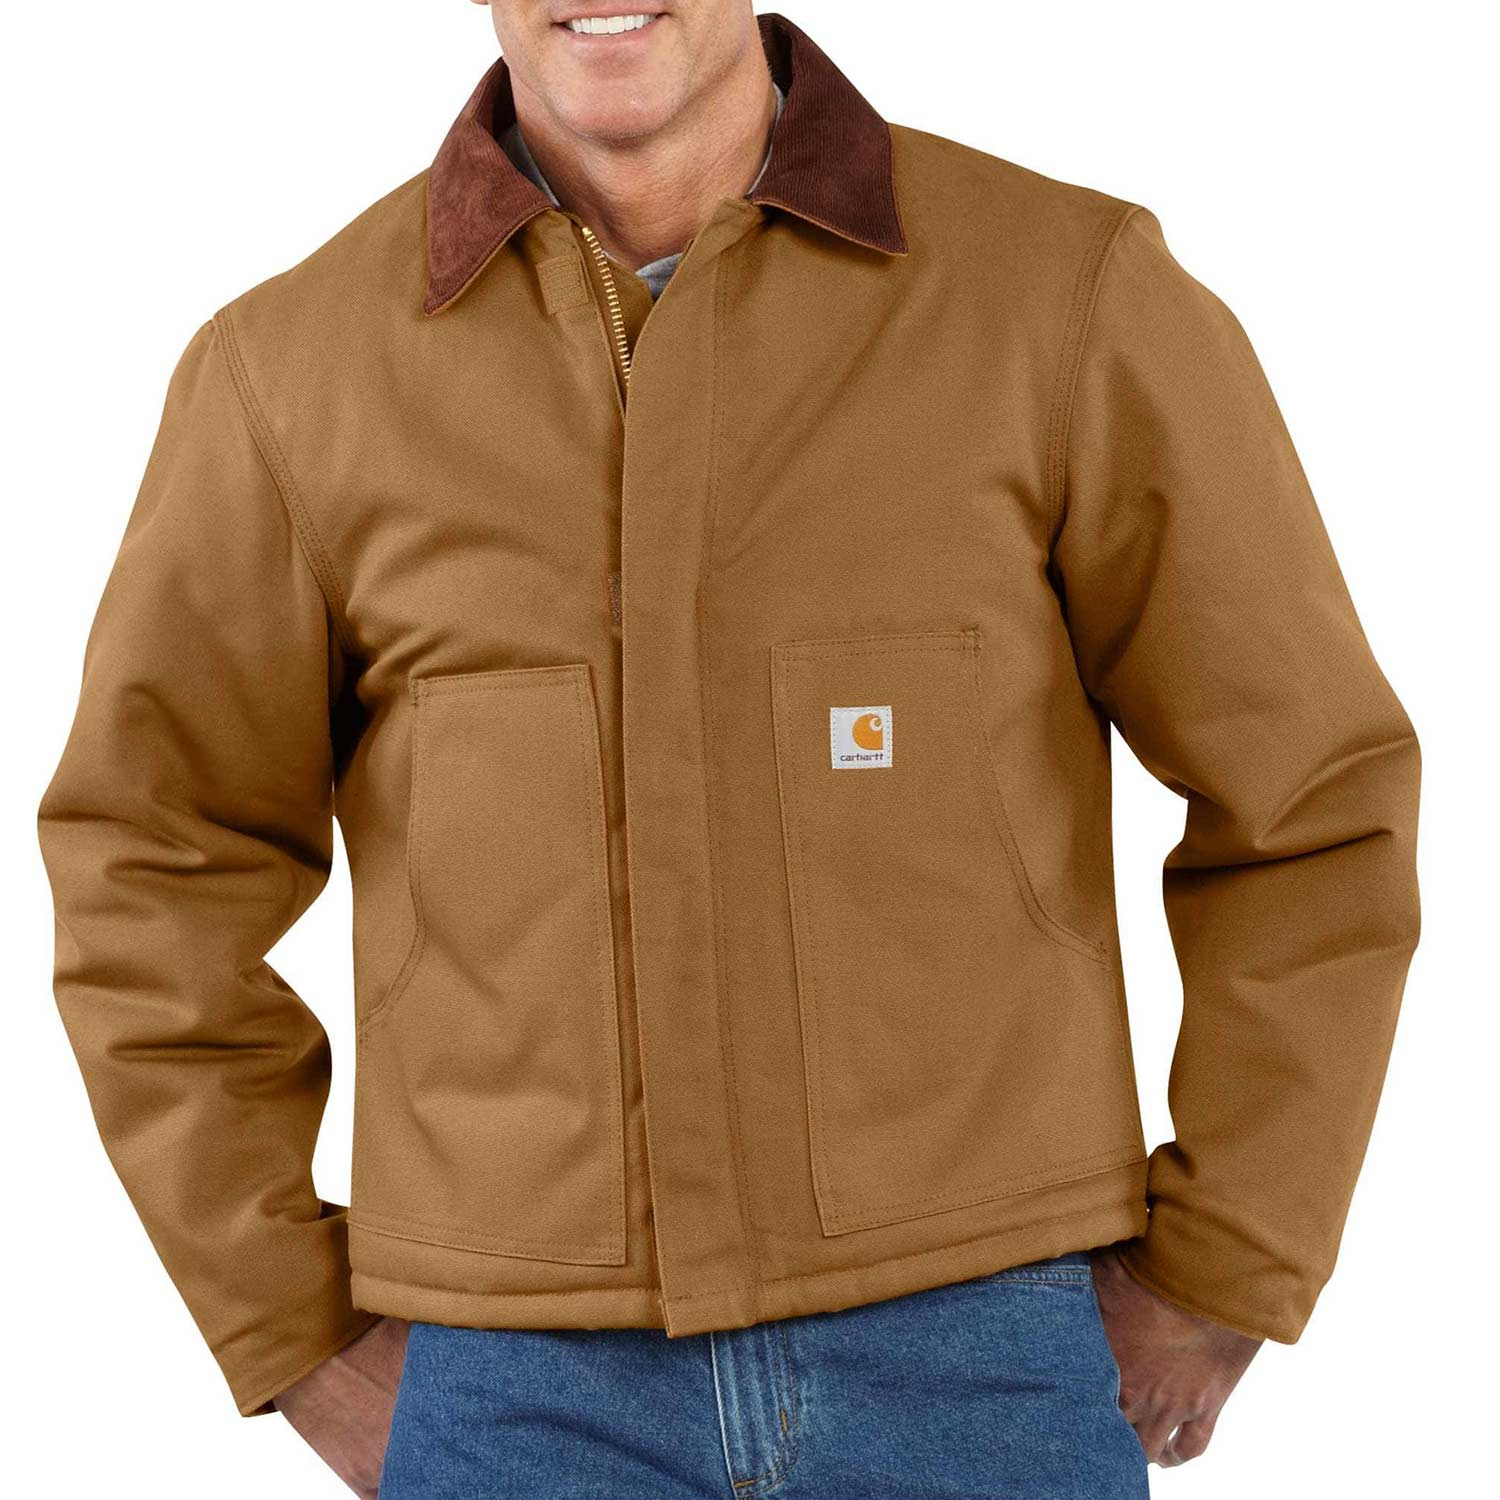 Carhartt Duck Traditional Artic Quilt Lined Jacket